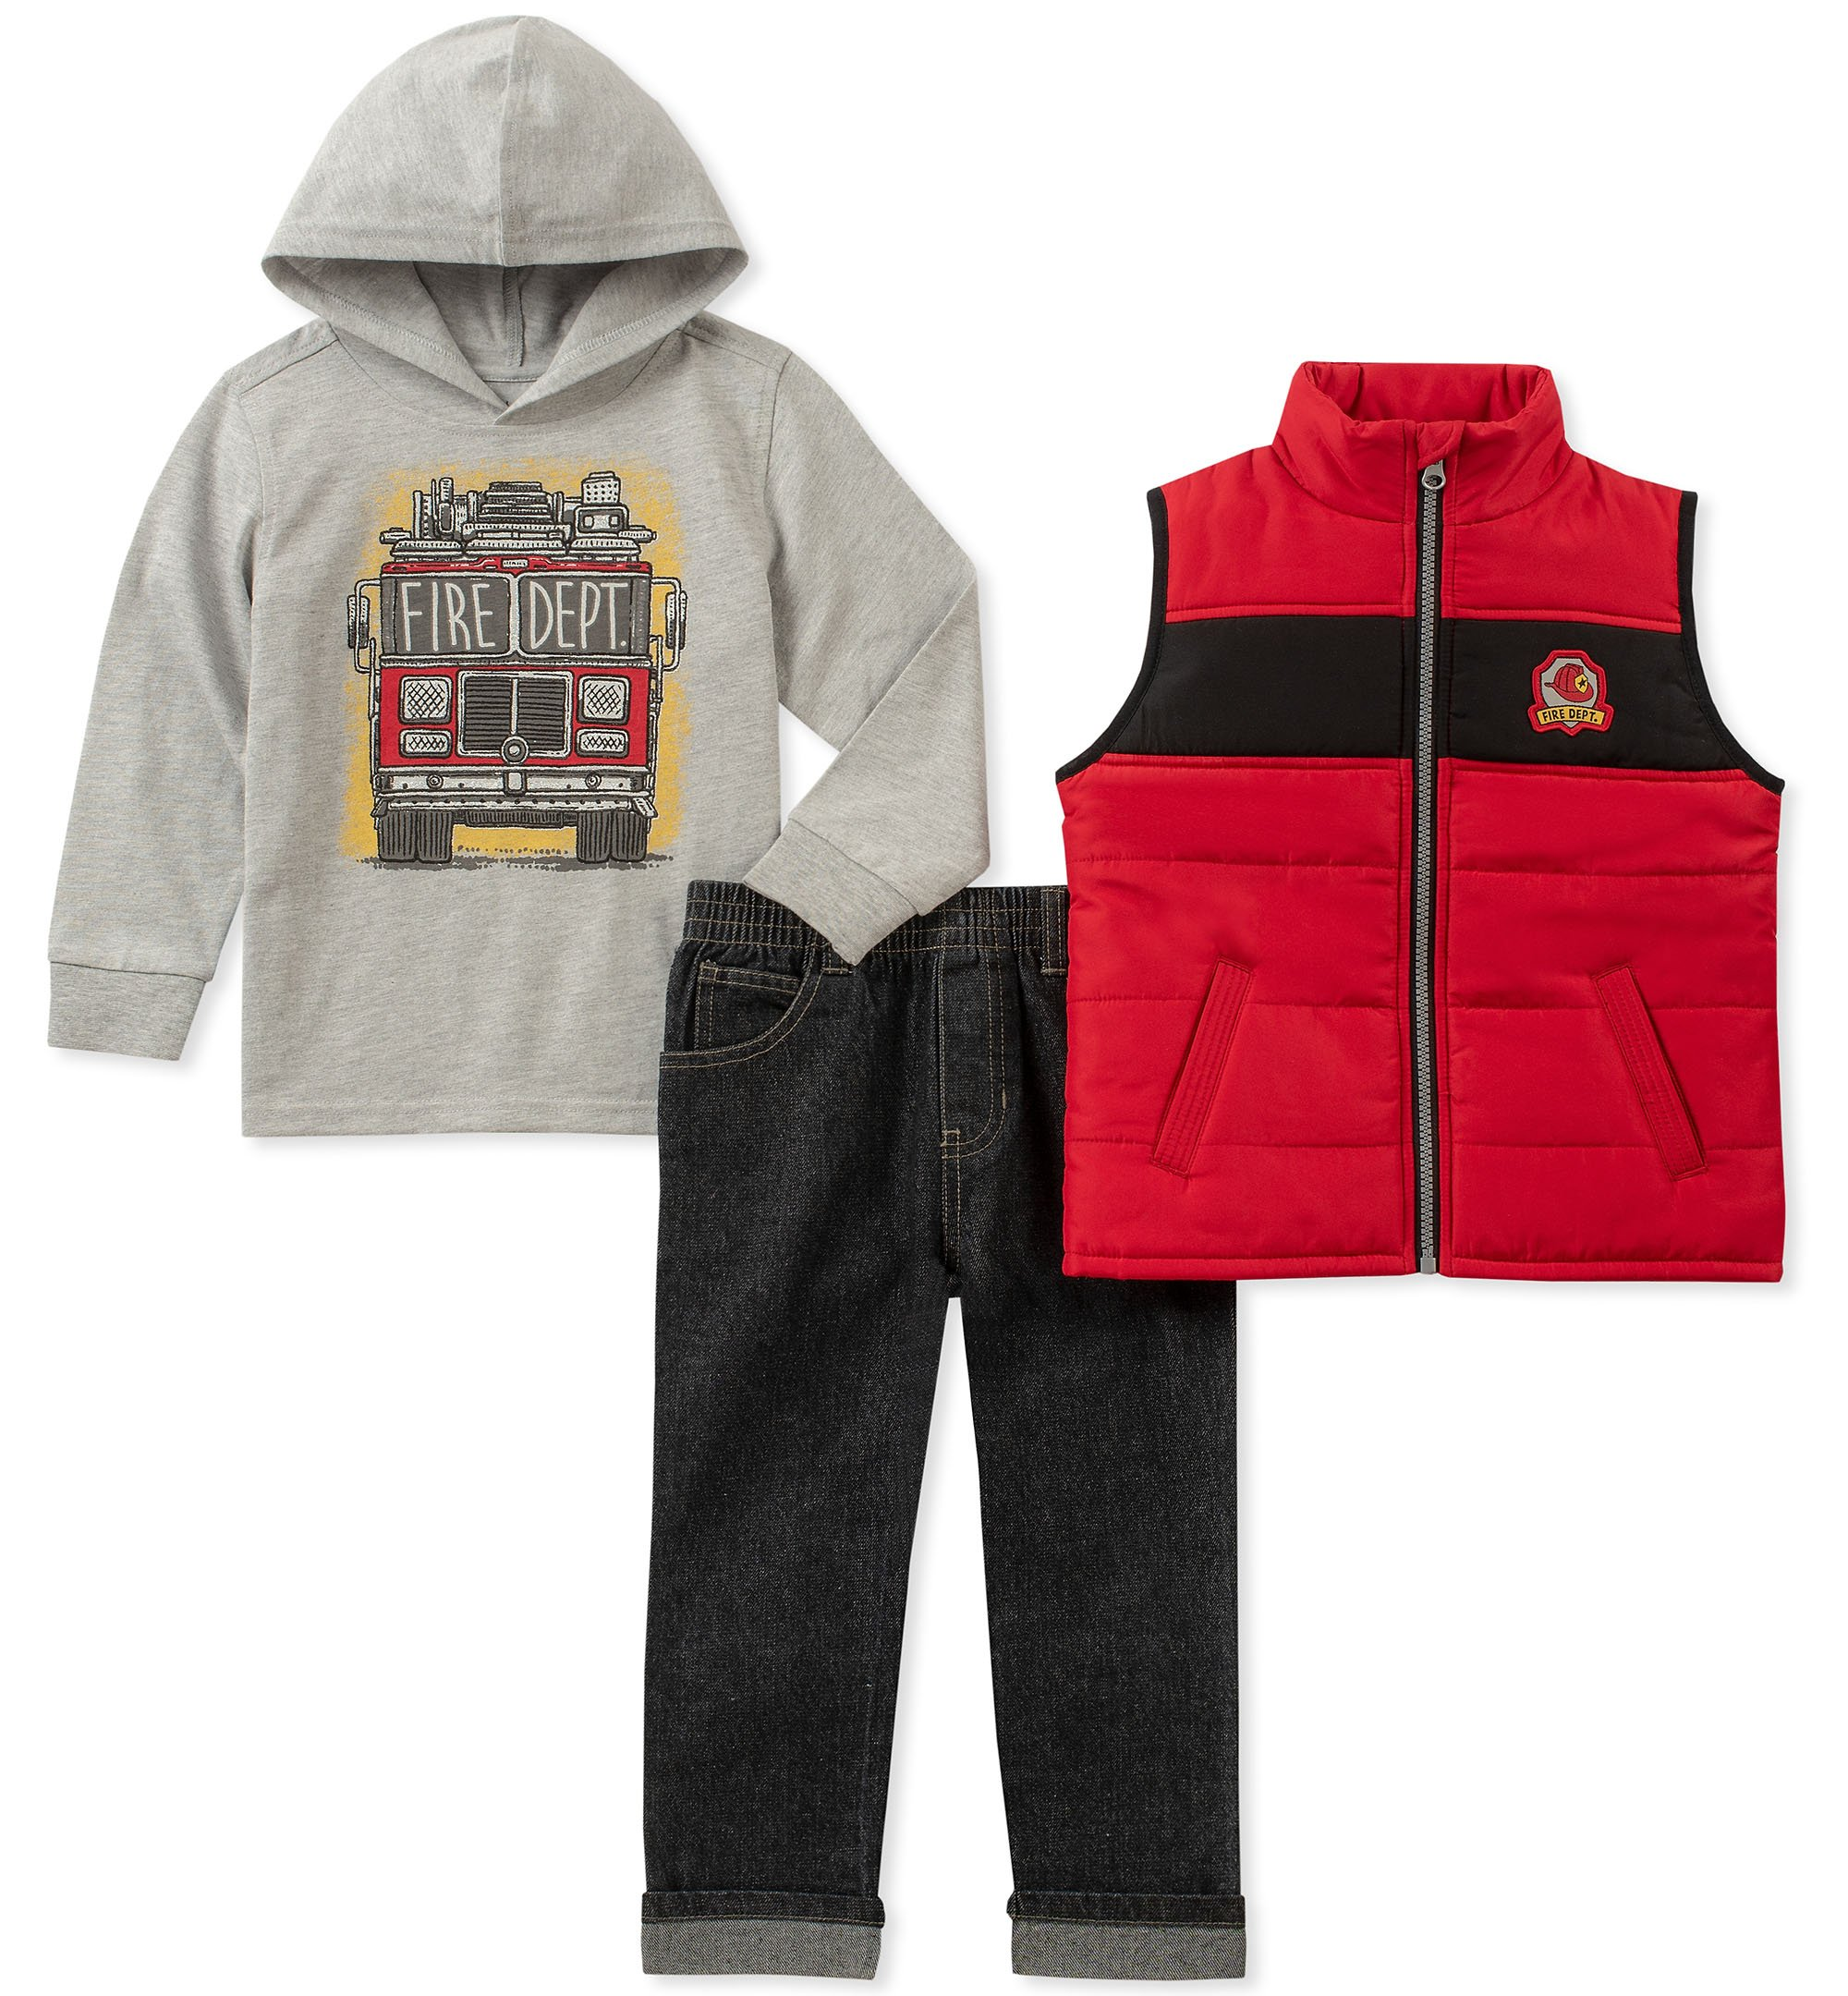 Kids Headquarters Boys' Toddler 3 Pieces Vest Set, red/Gray 2T